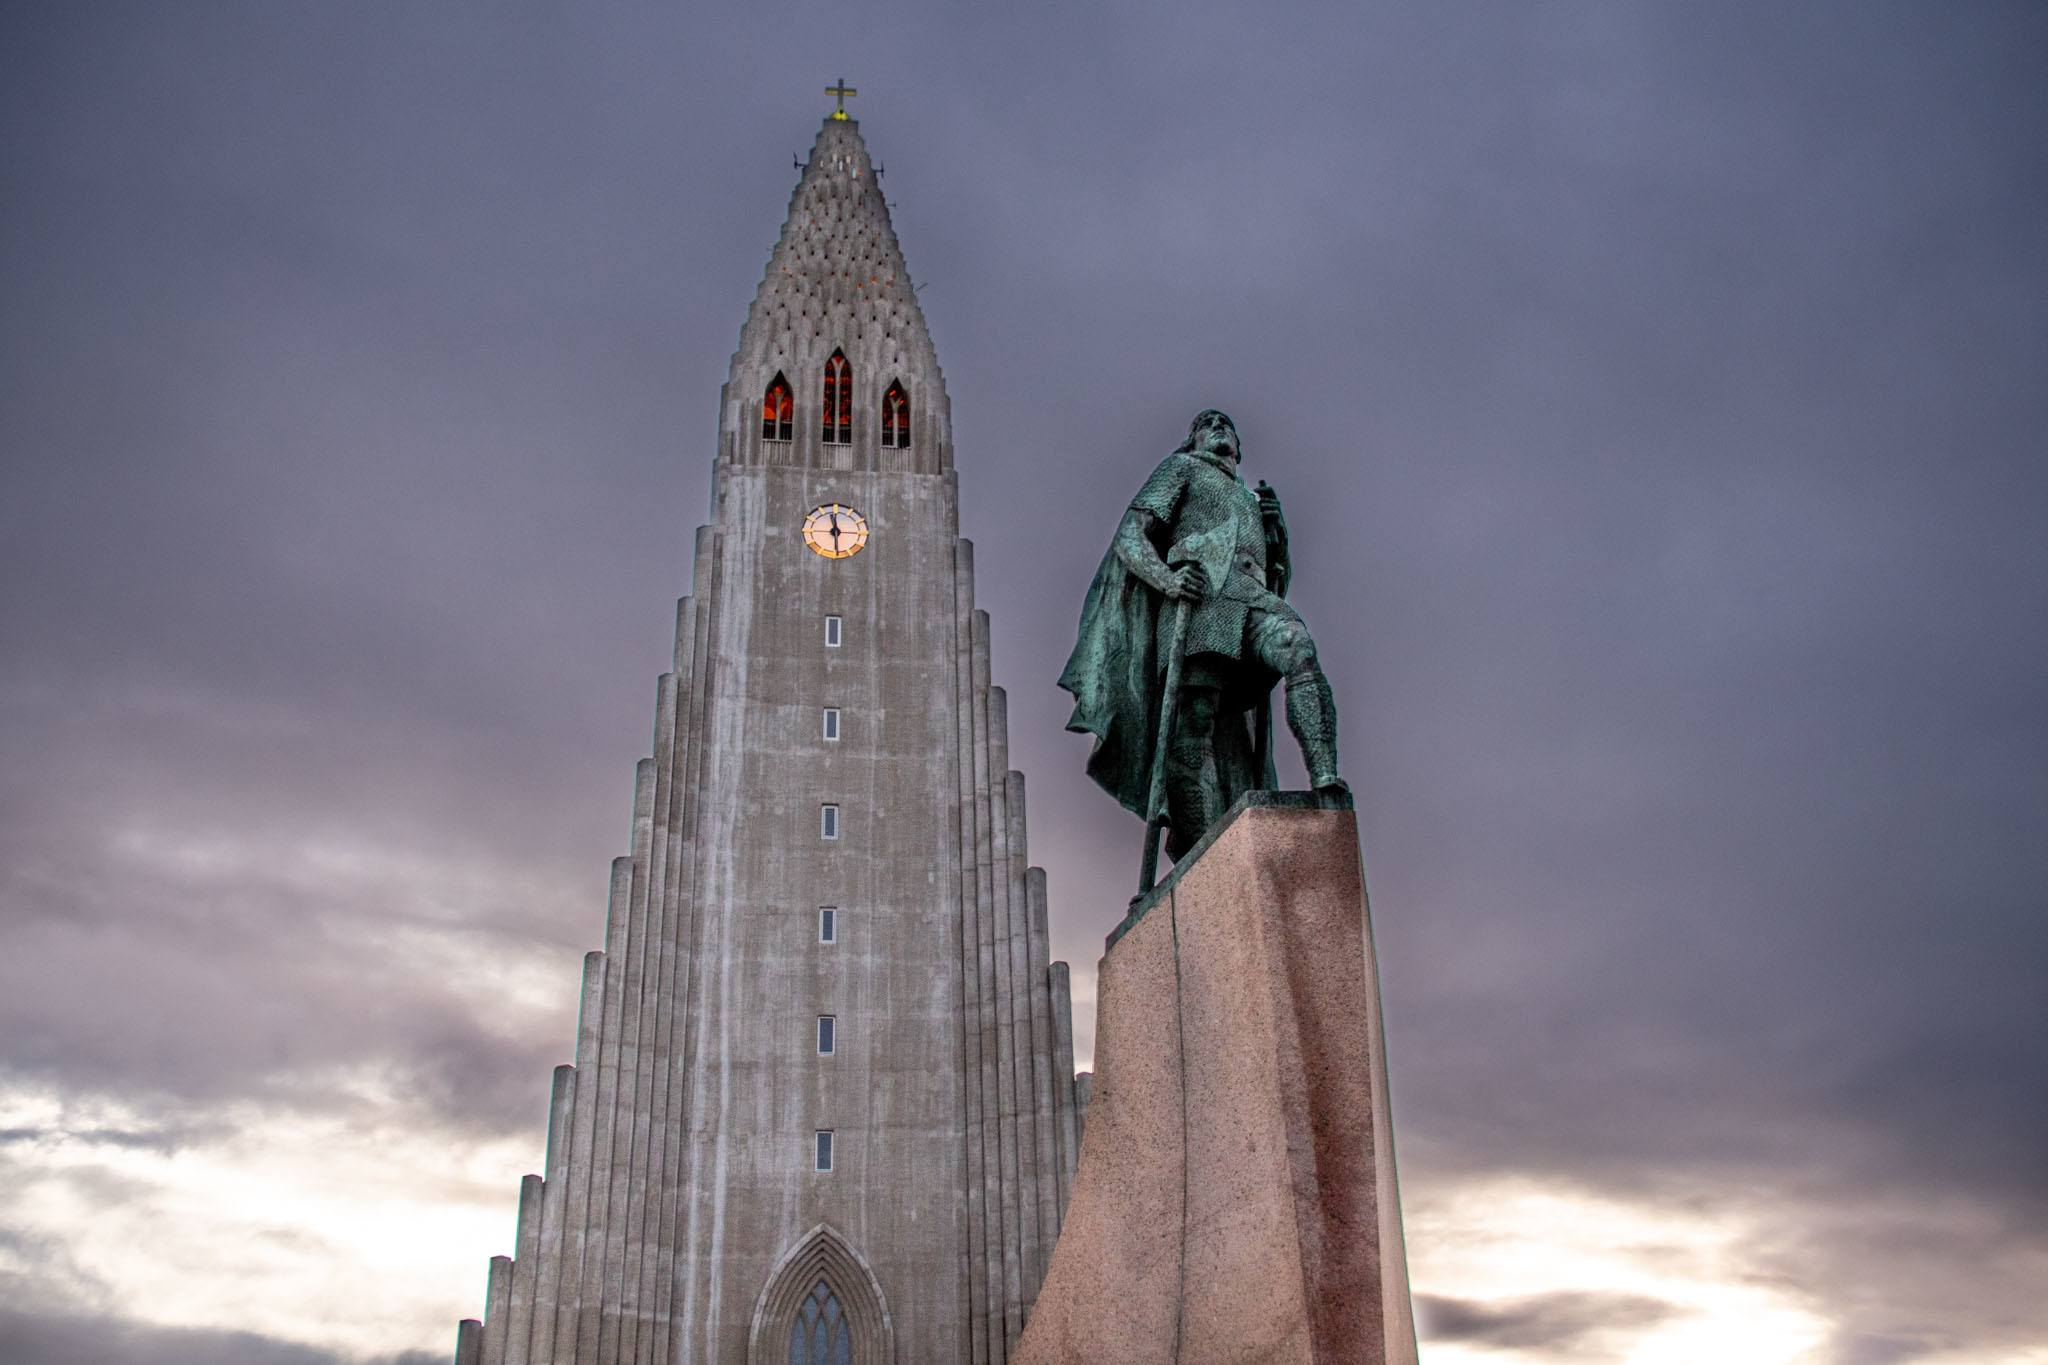 Leif Ericsson statue in front of the Hallgrimskirkja church in Reykjavik